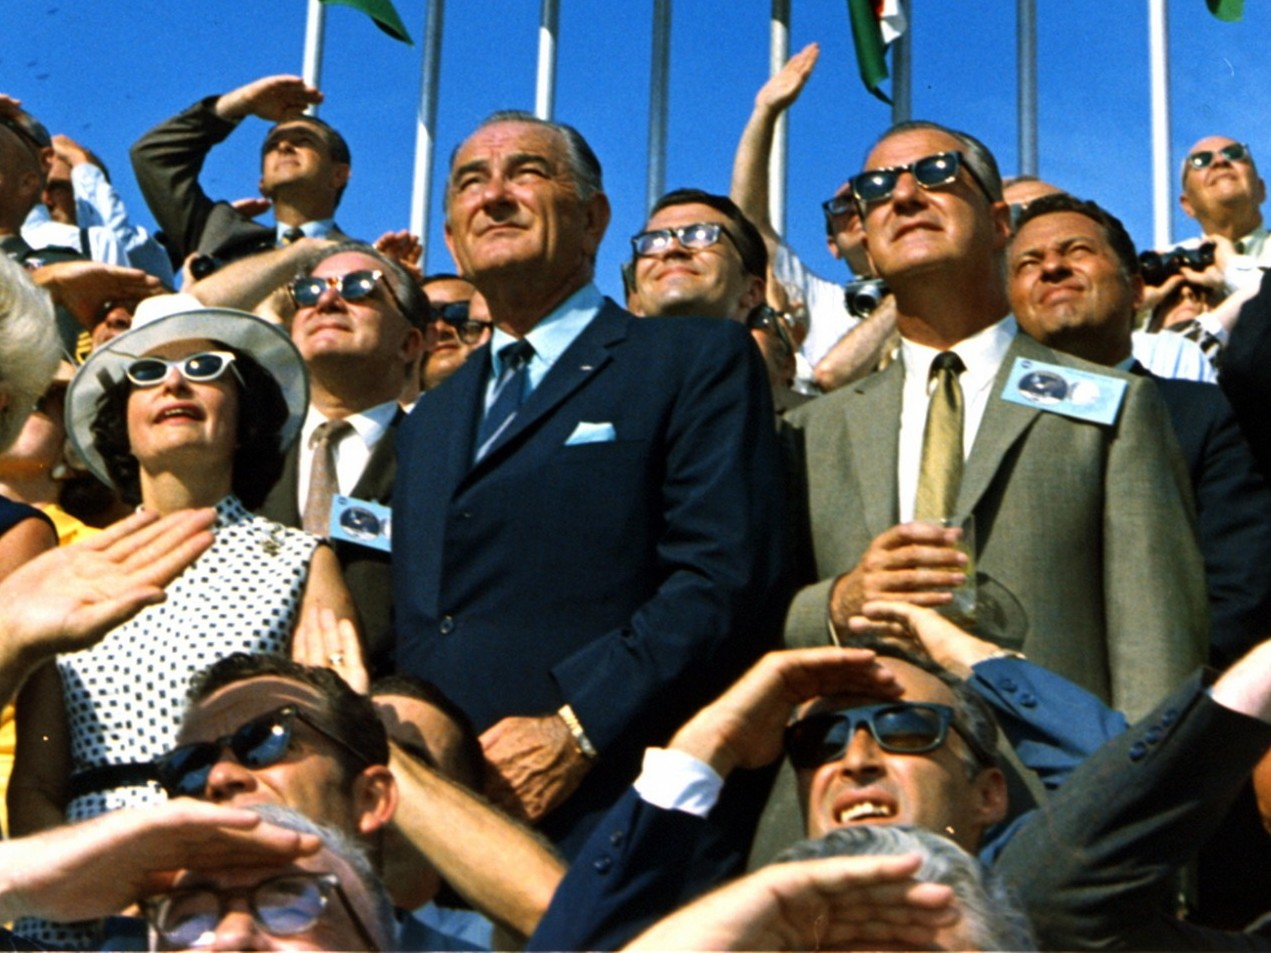 President Johnson and crowd watch return of Apollo 11. Source: NASA The Commons, Flickr - Public Domain